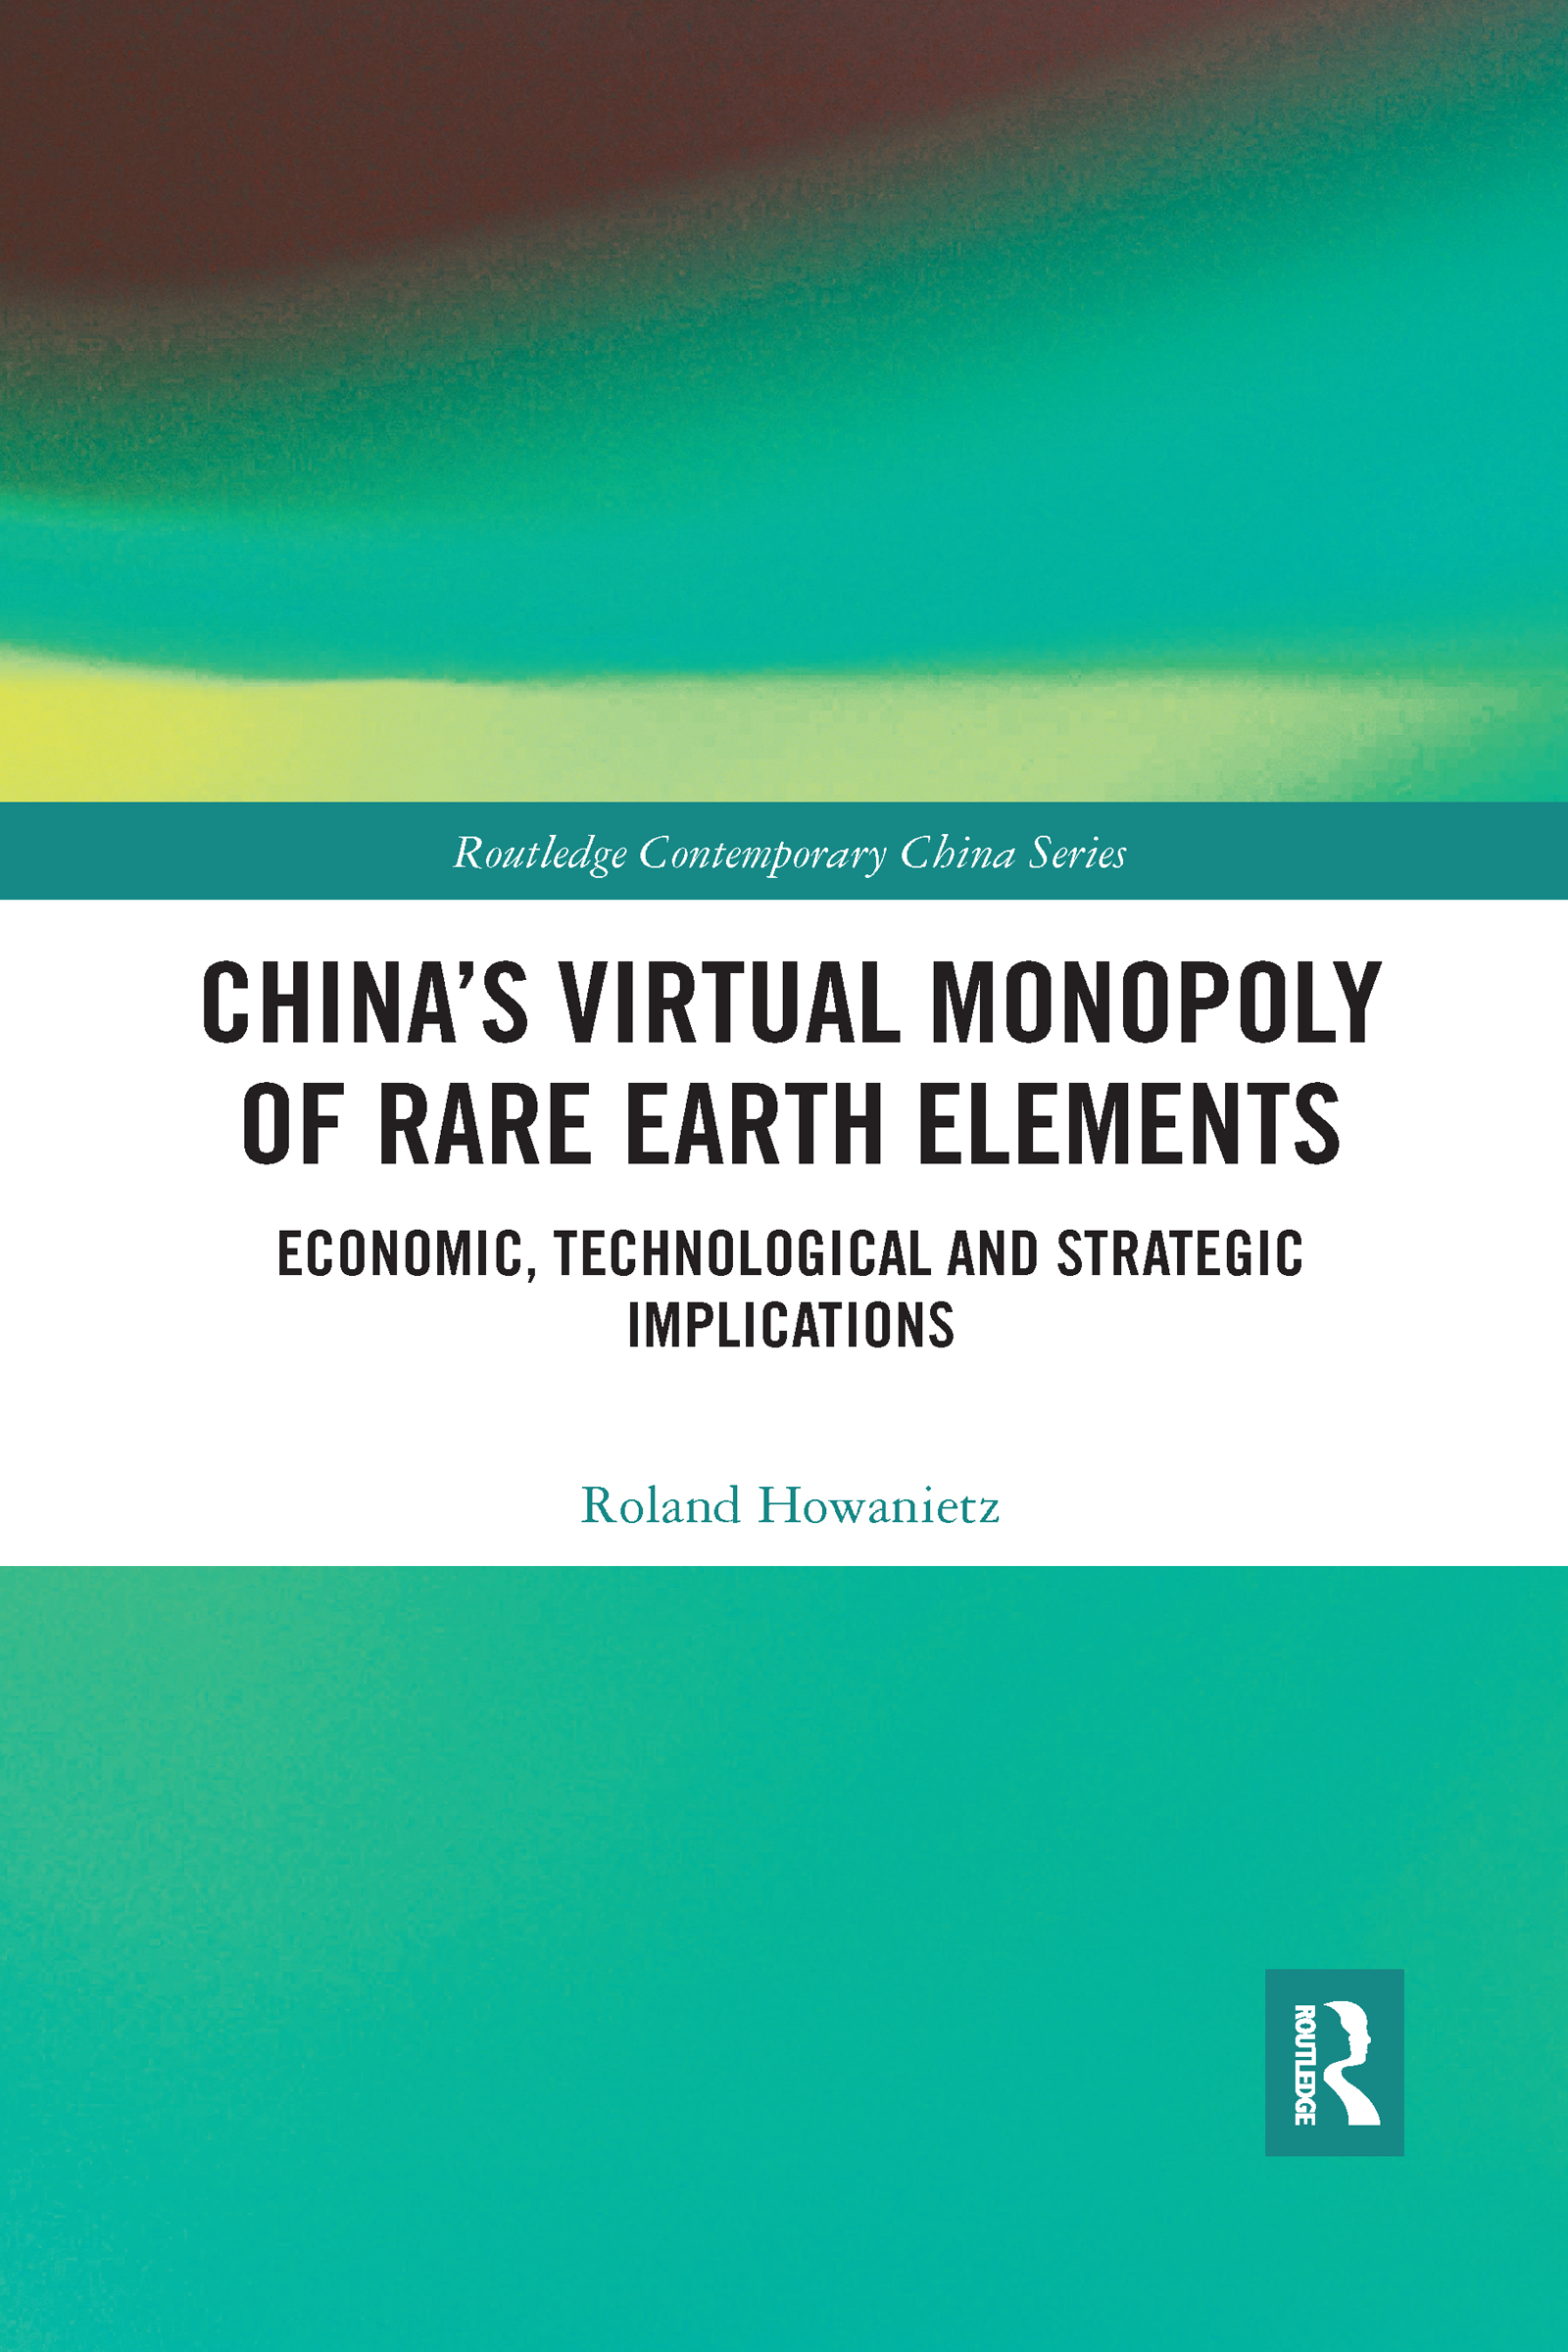 China's Virtual Monopoly of Rare Earth Elements